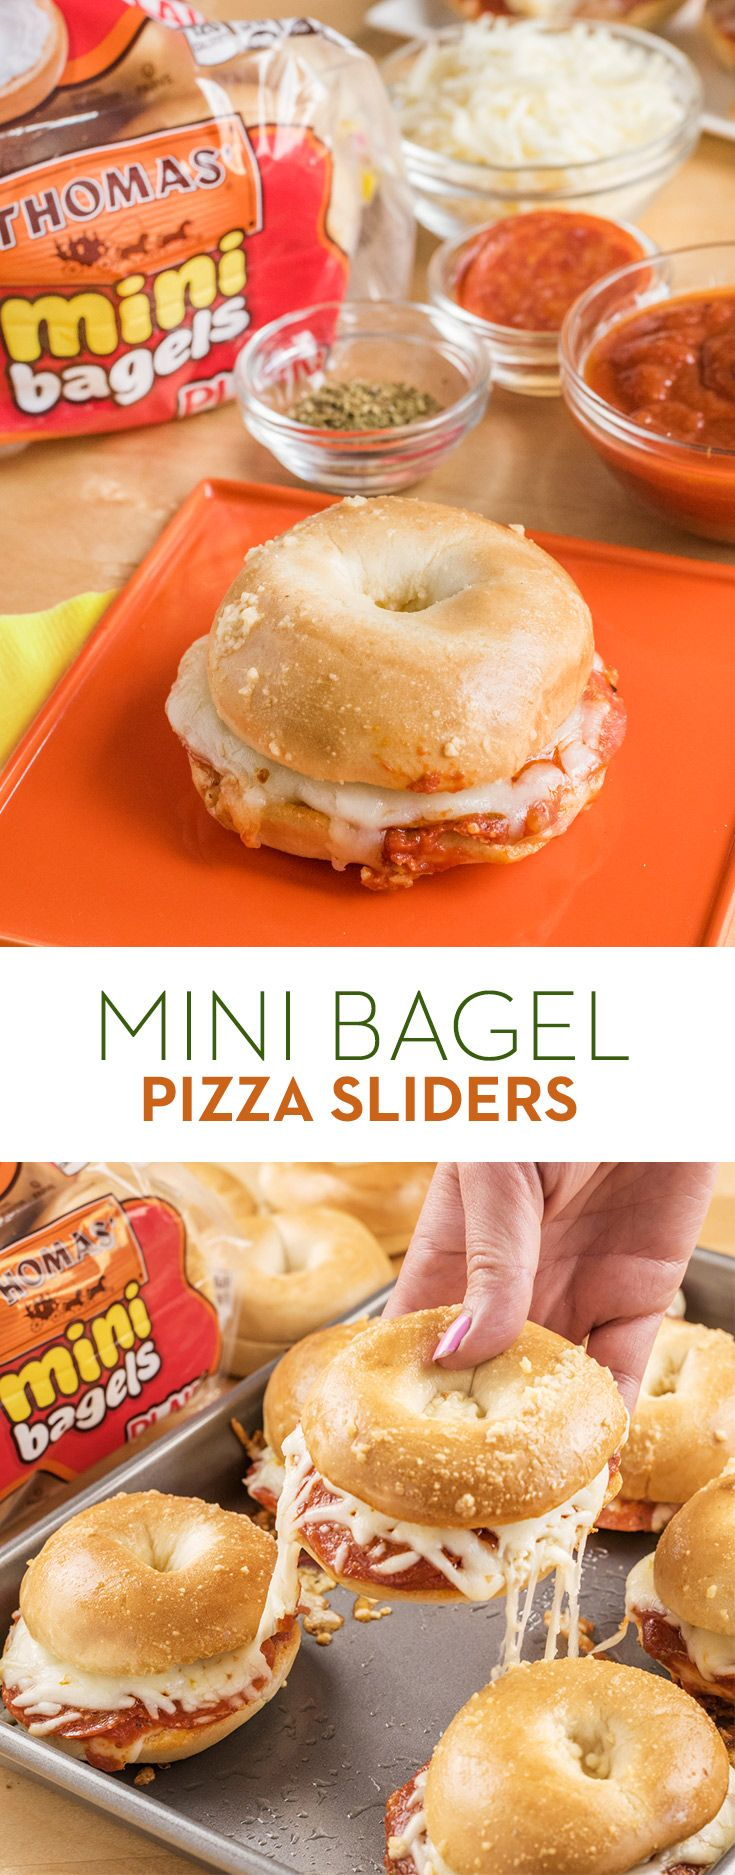 Mini Bagel Pizza Sliders: Score big points at your next tailgate with these Mini Bagel Pizza Sliders. Top Thomas' Original Mini Bagels with tomato sauce, Mozzarella, pepperoni and oregano. Brush tops with Parmesan garlic butter, bake and simply sit back and enjoy the win.